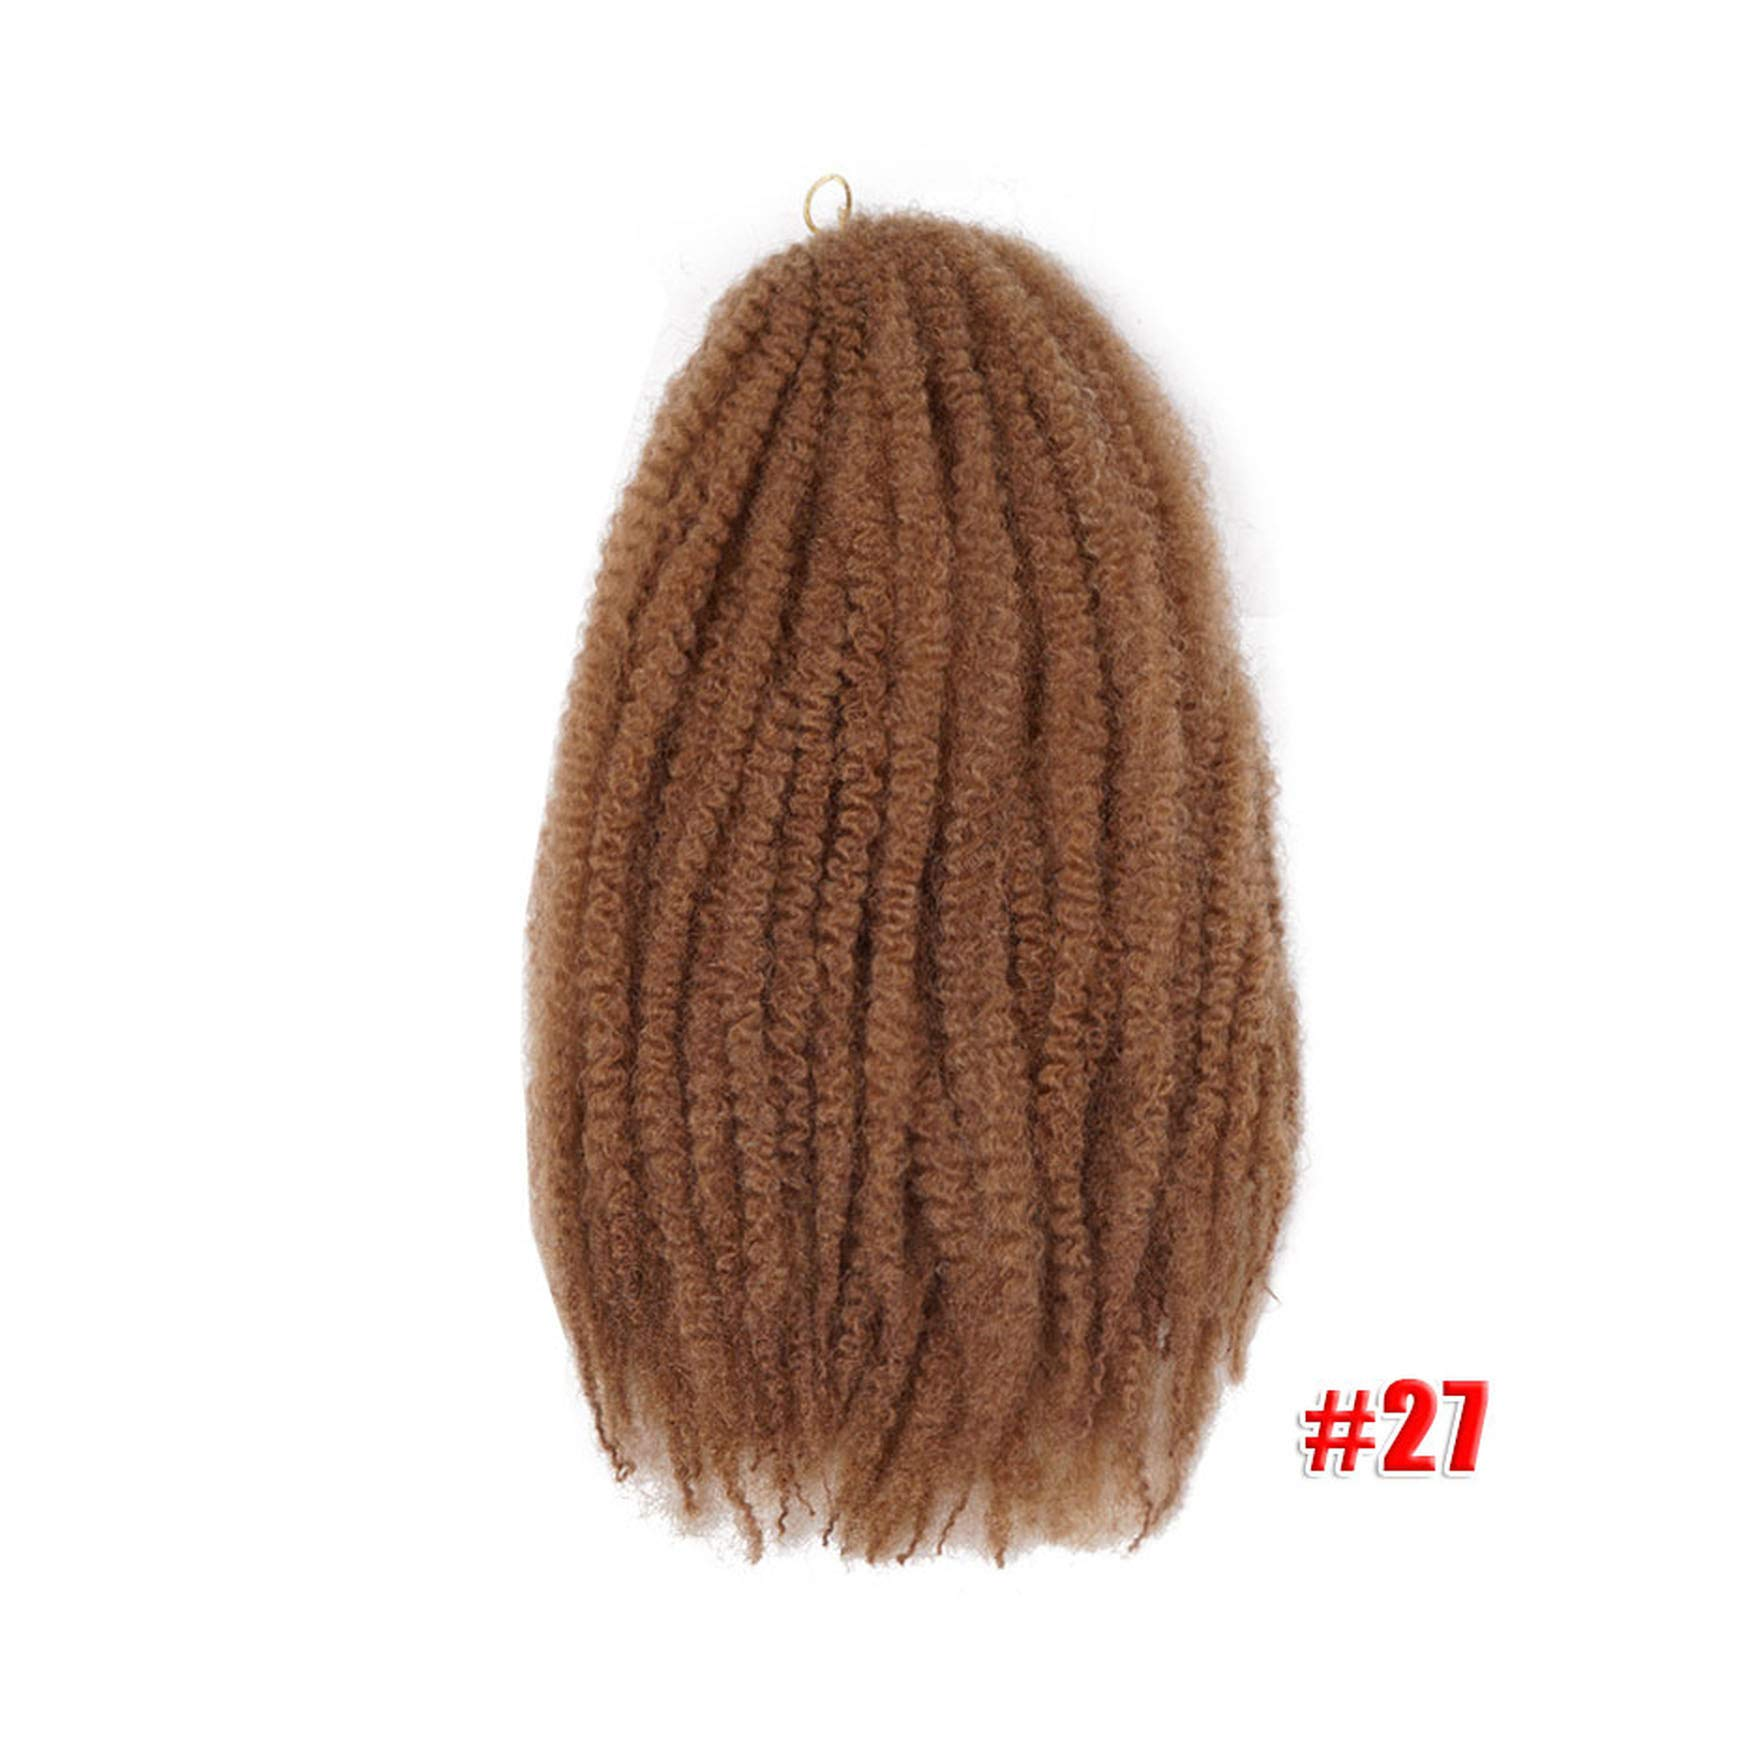 Marley Braids Hair Crochet Ombre Afro Synthetic Braiding Hair Crochet Braids Hair Extensions Bulk,#27,18Inches,9 Packs by LQ21